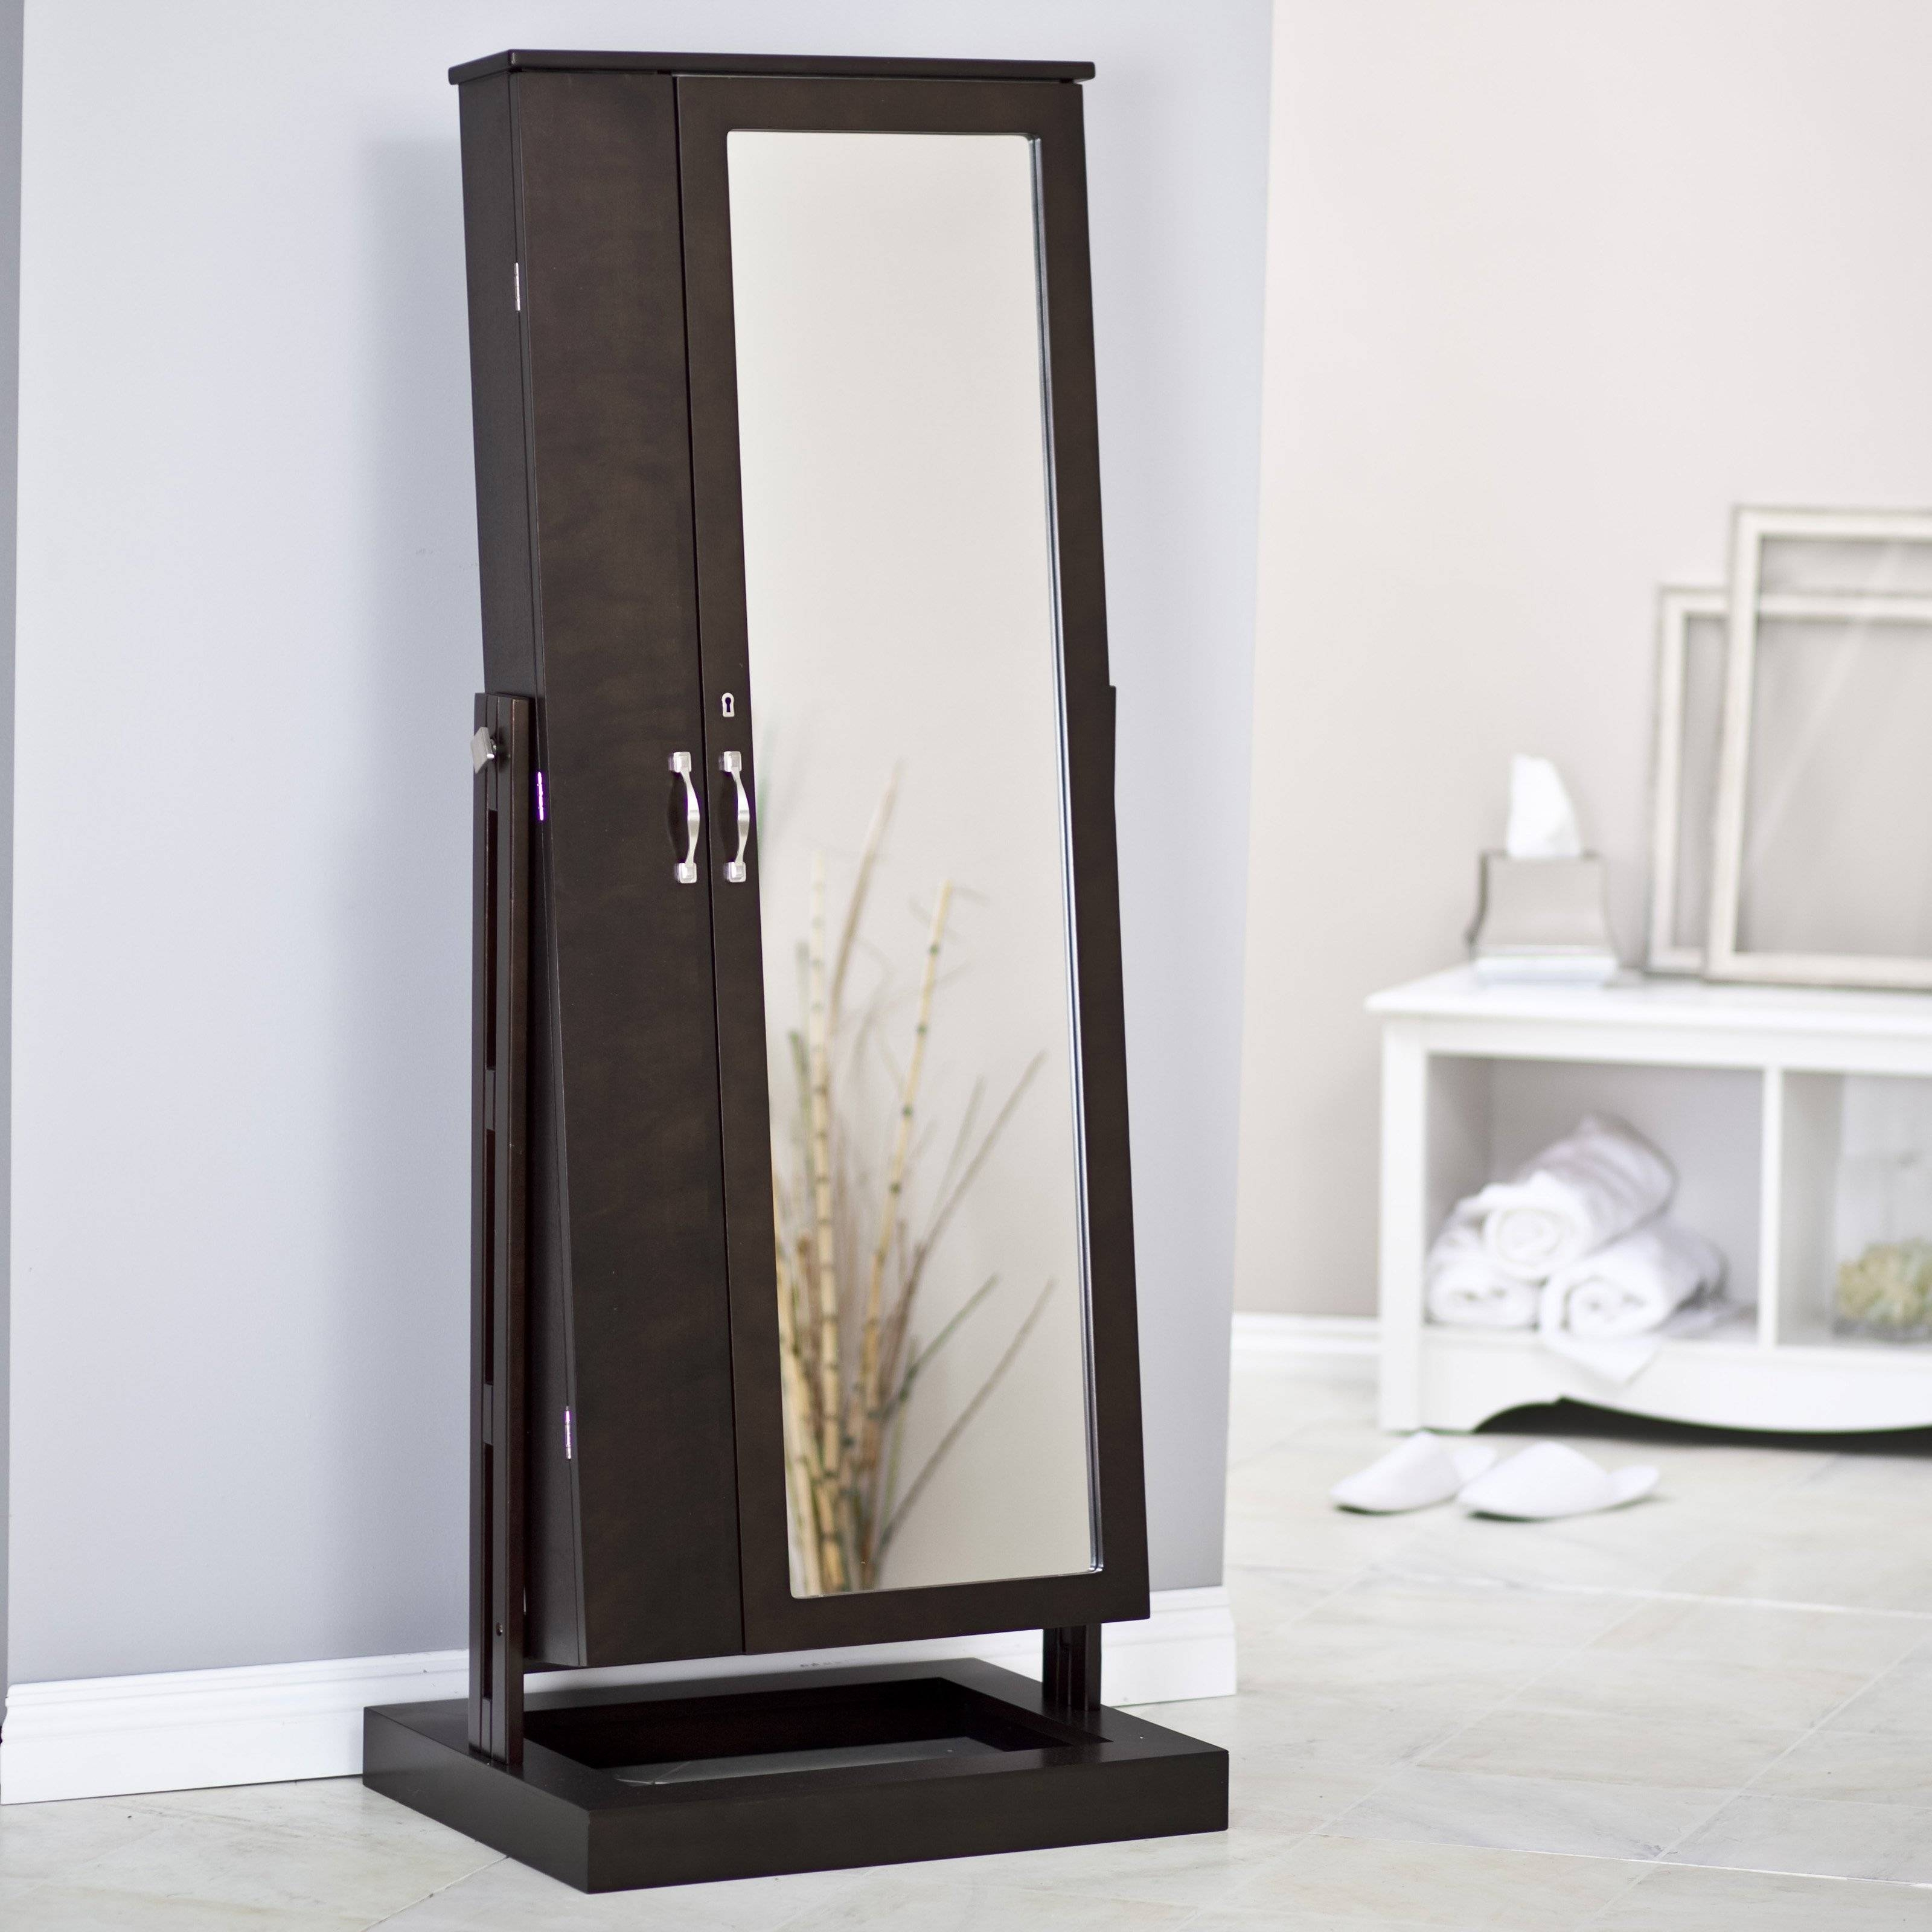 Bedroom : Tv Armoire Small Armoire Corner Wardrobe Closet Armoire pertaining to Small Corner Wardrobes (Image 2 of 15)